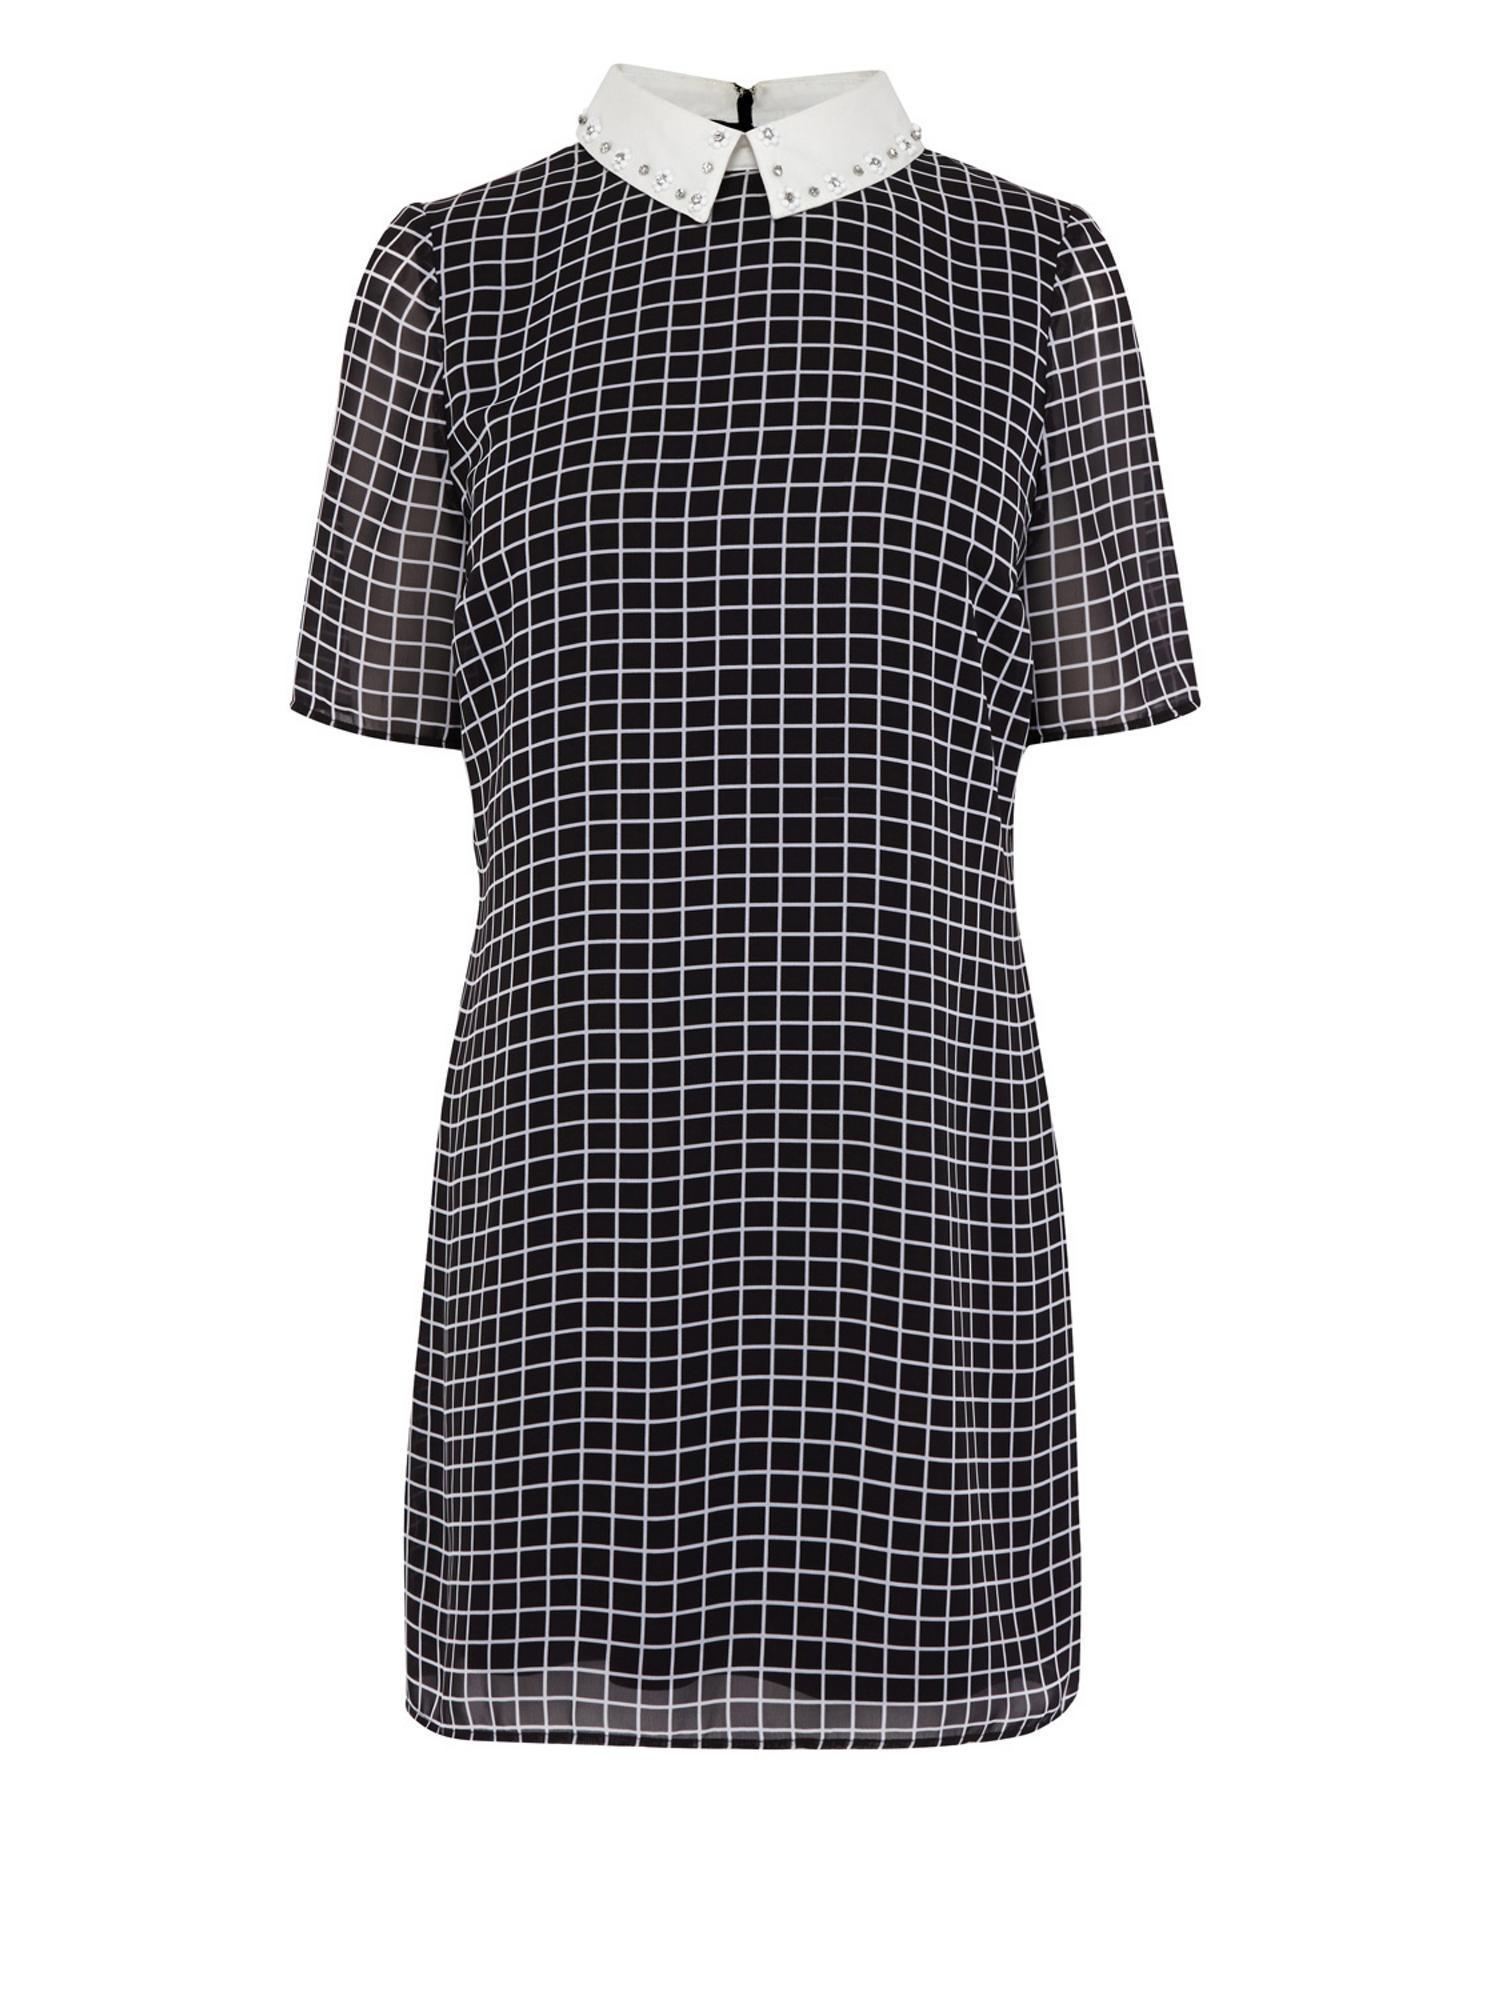 【海外限定】Coast ワンピース☆Jaxson Check Shirt Dress